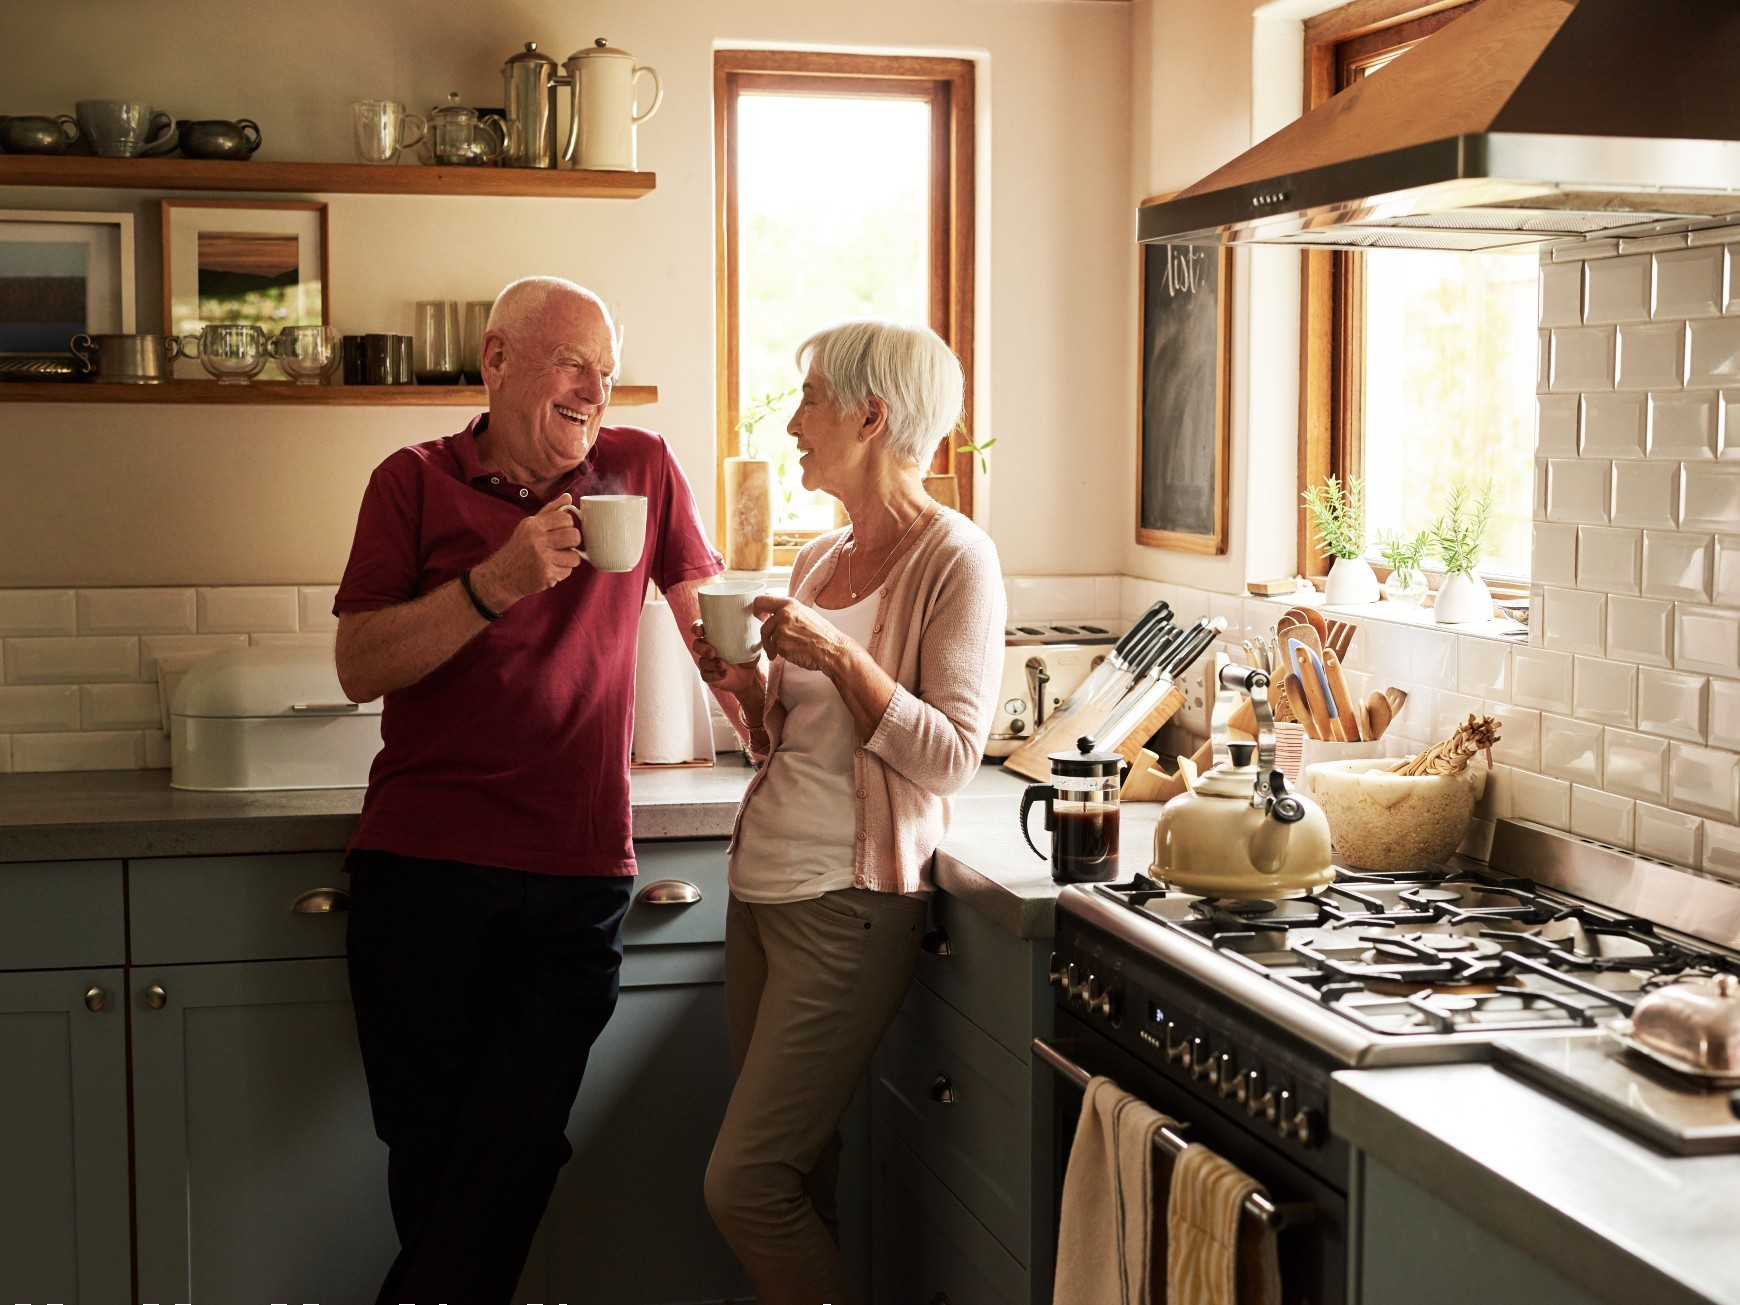 Soon to be retirees relaxing together in their kitchen with their morning coffee.